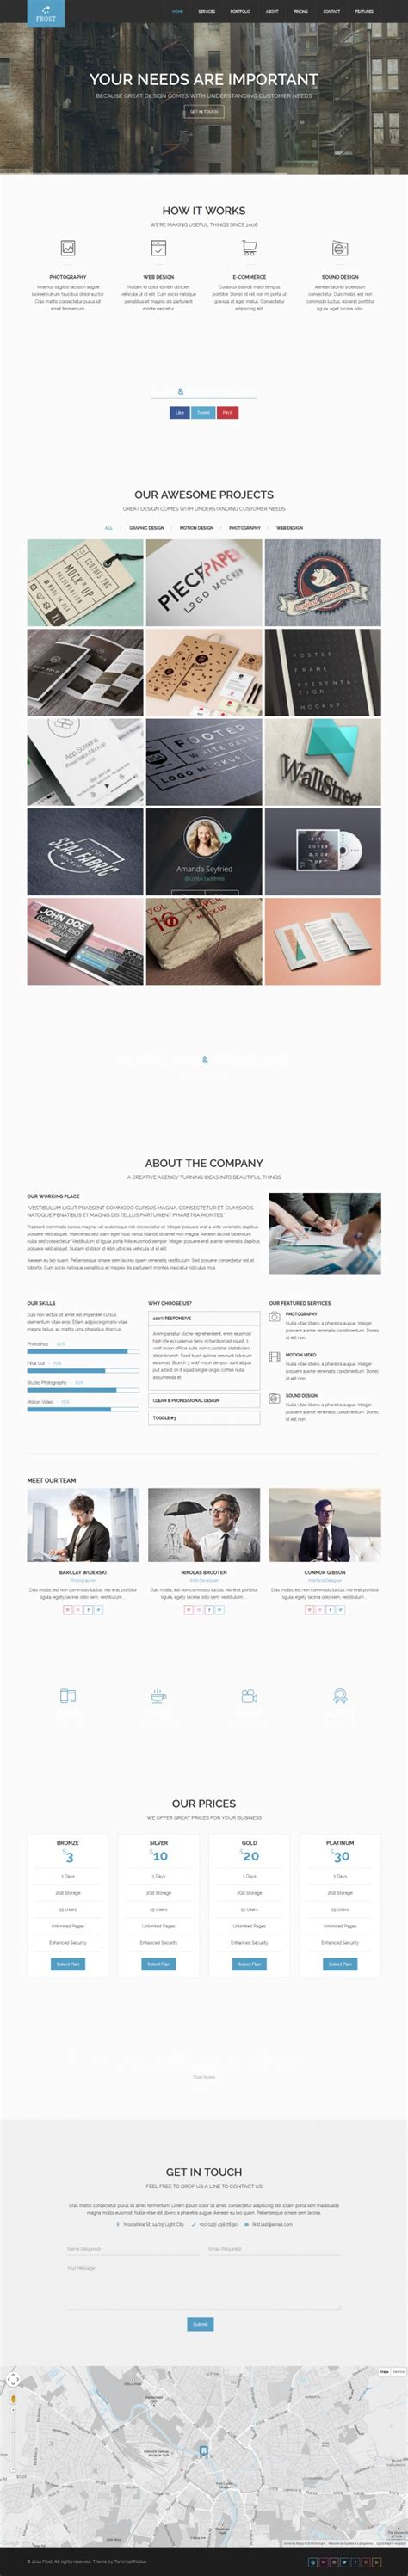 theme of design by frost frost a premium multipurpose wordpress theme